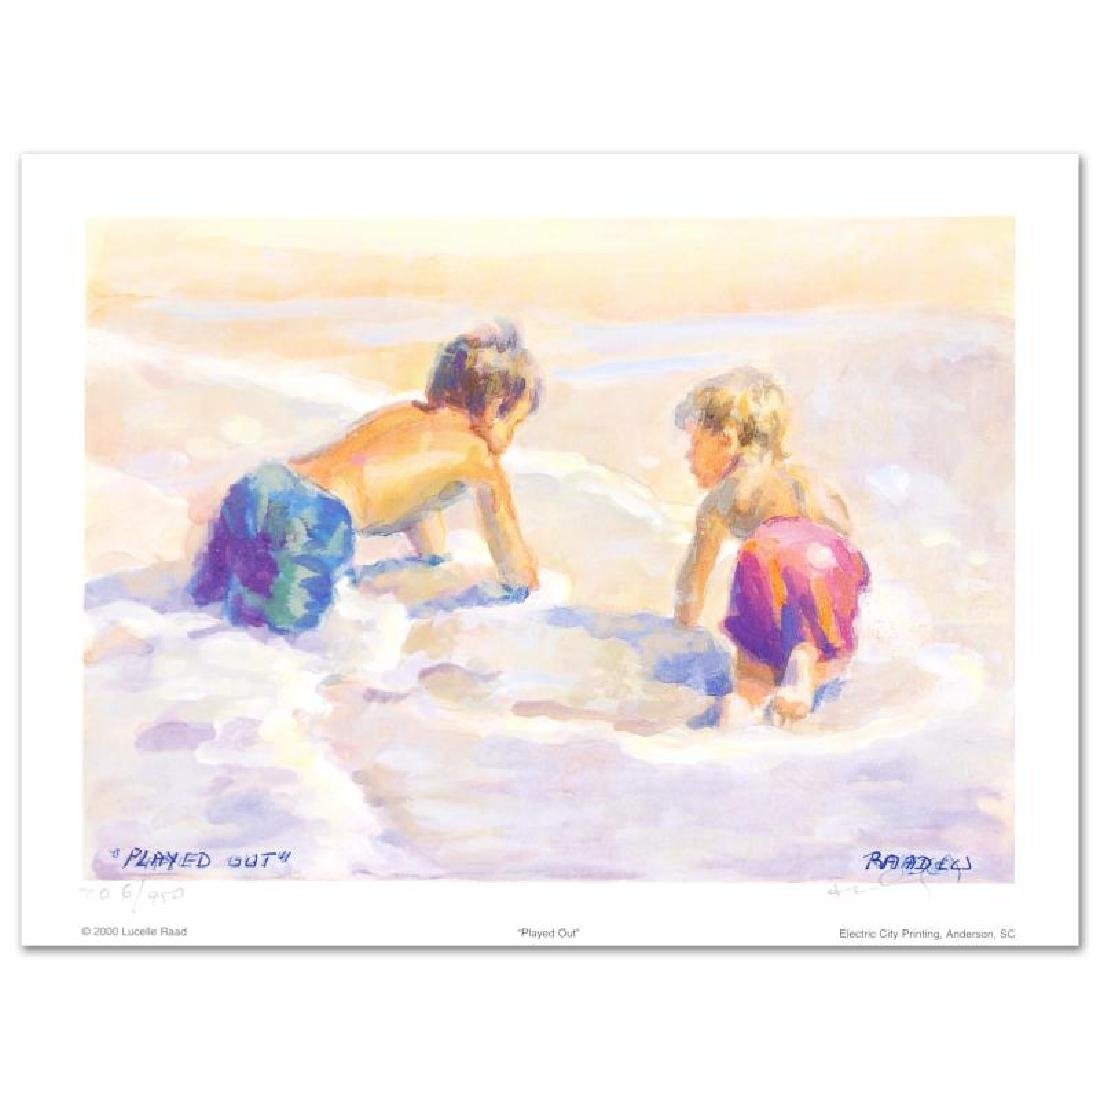 """""""Played Out"""" Limited Edition Lithograph by Lucelle Raad - 3"""